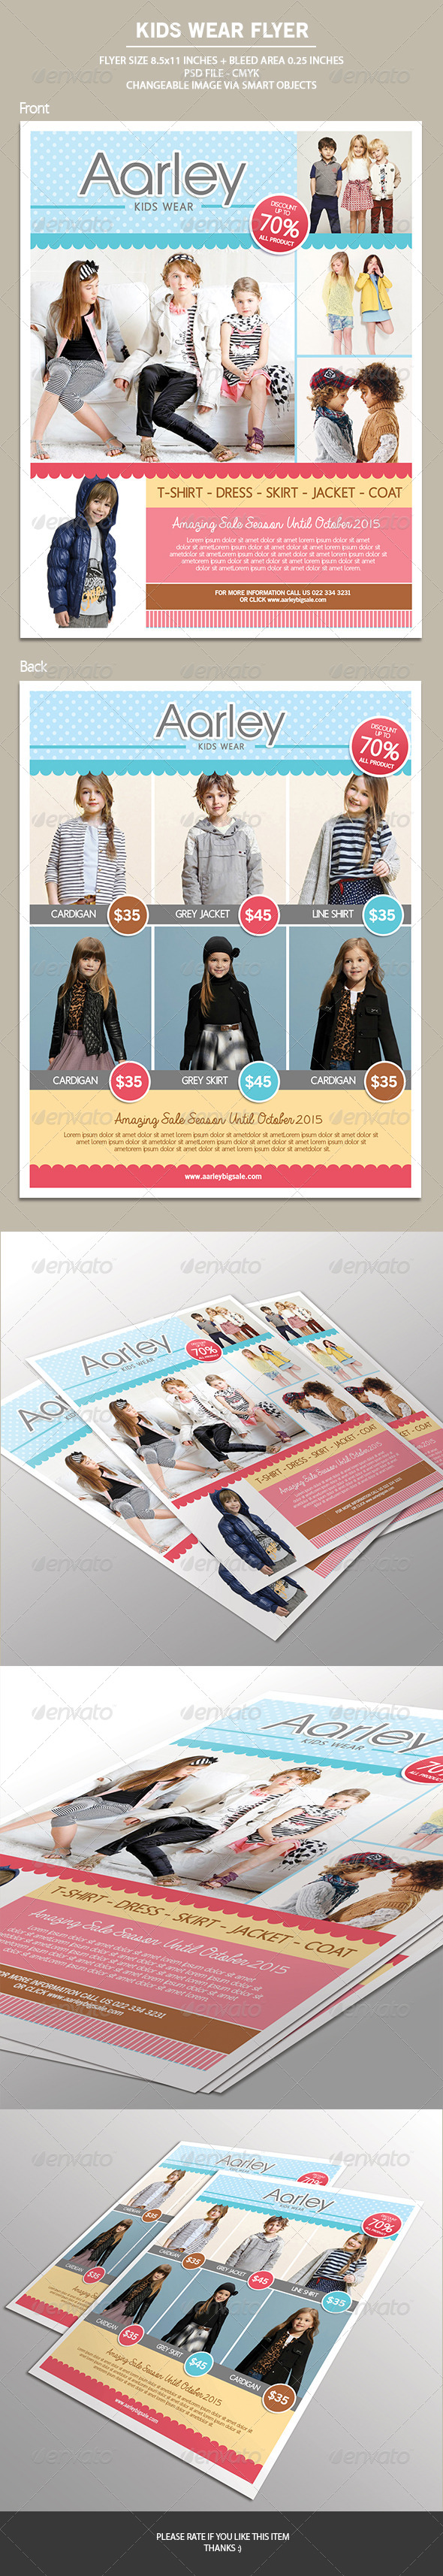 GraphicRiver Kids Wear Flyer 7158368